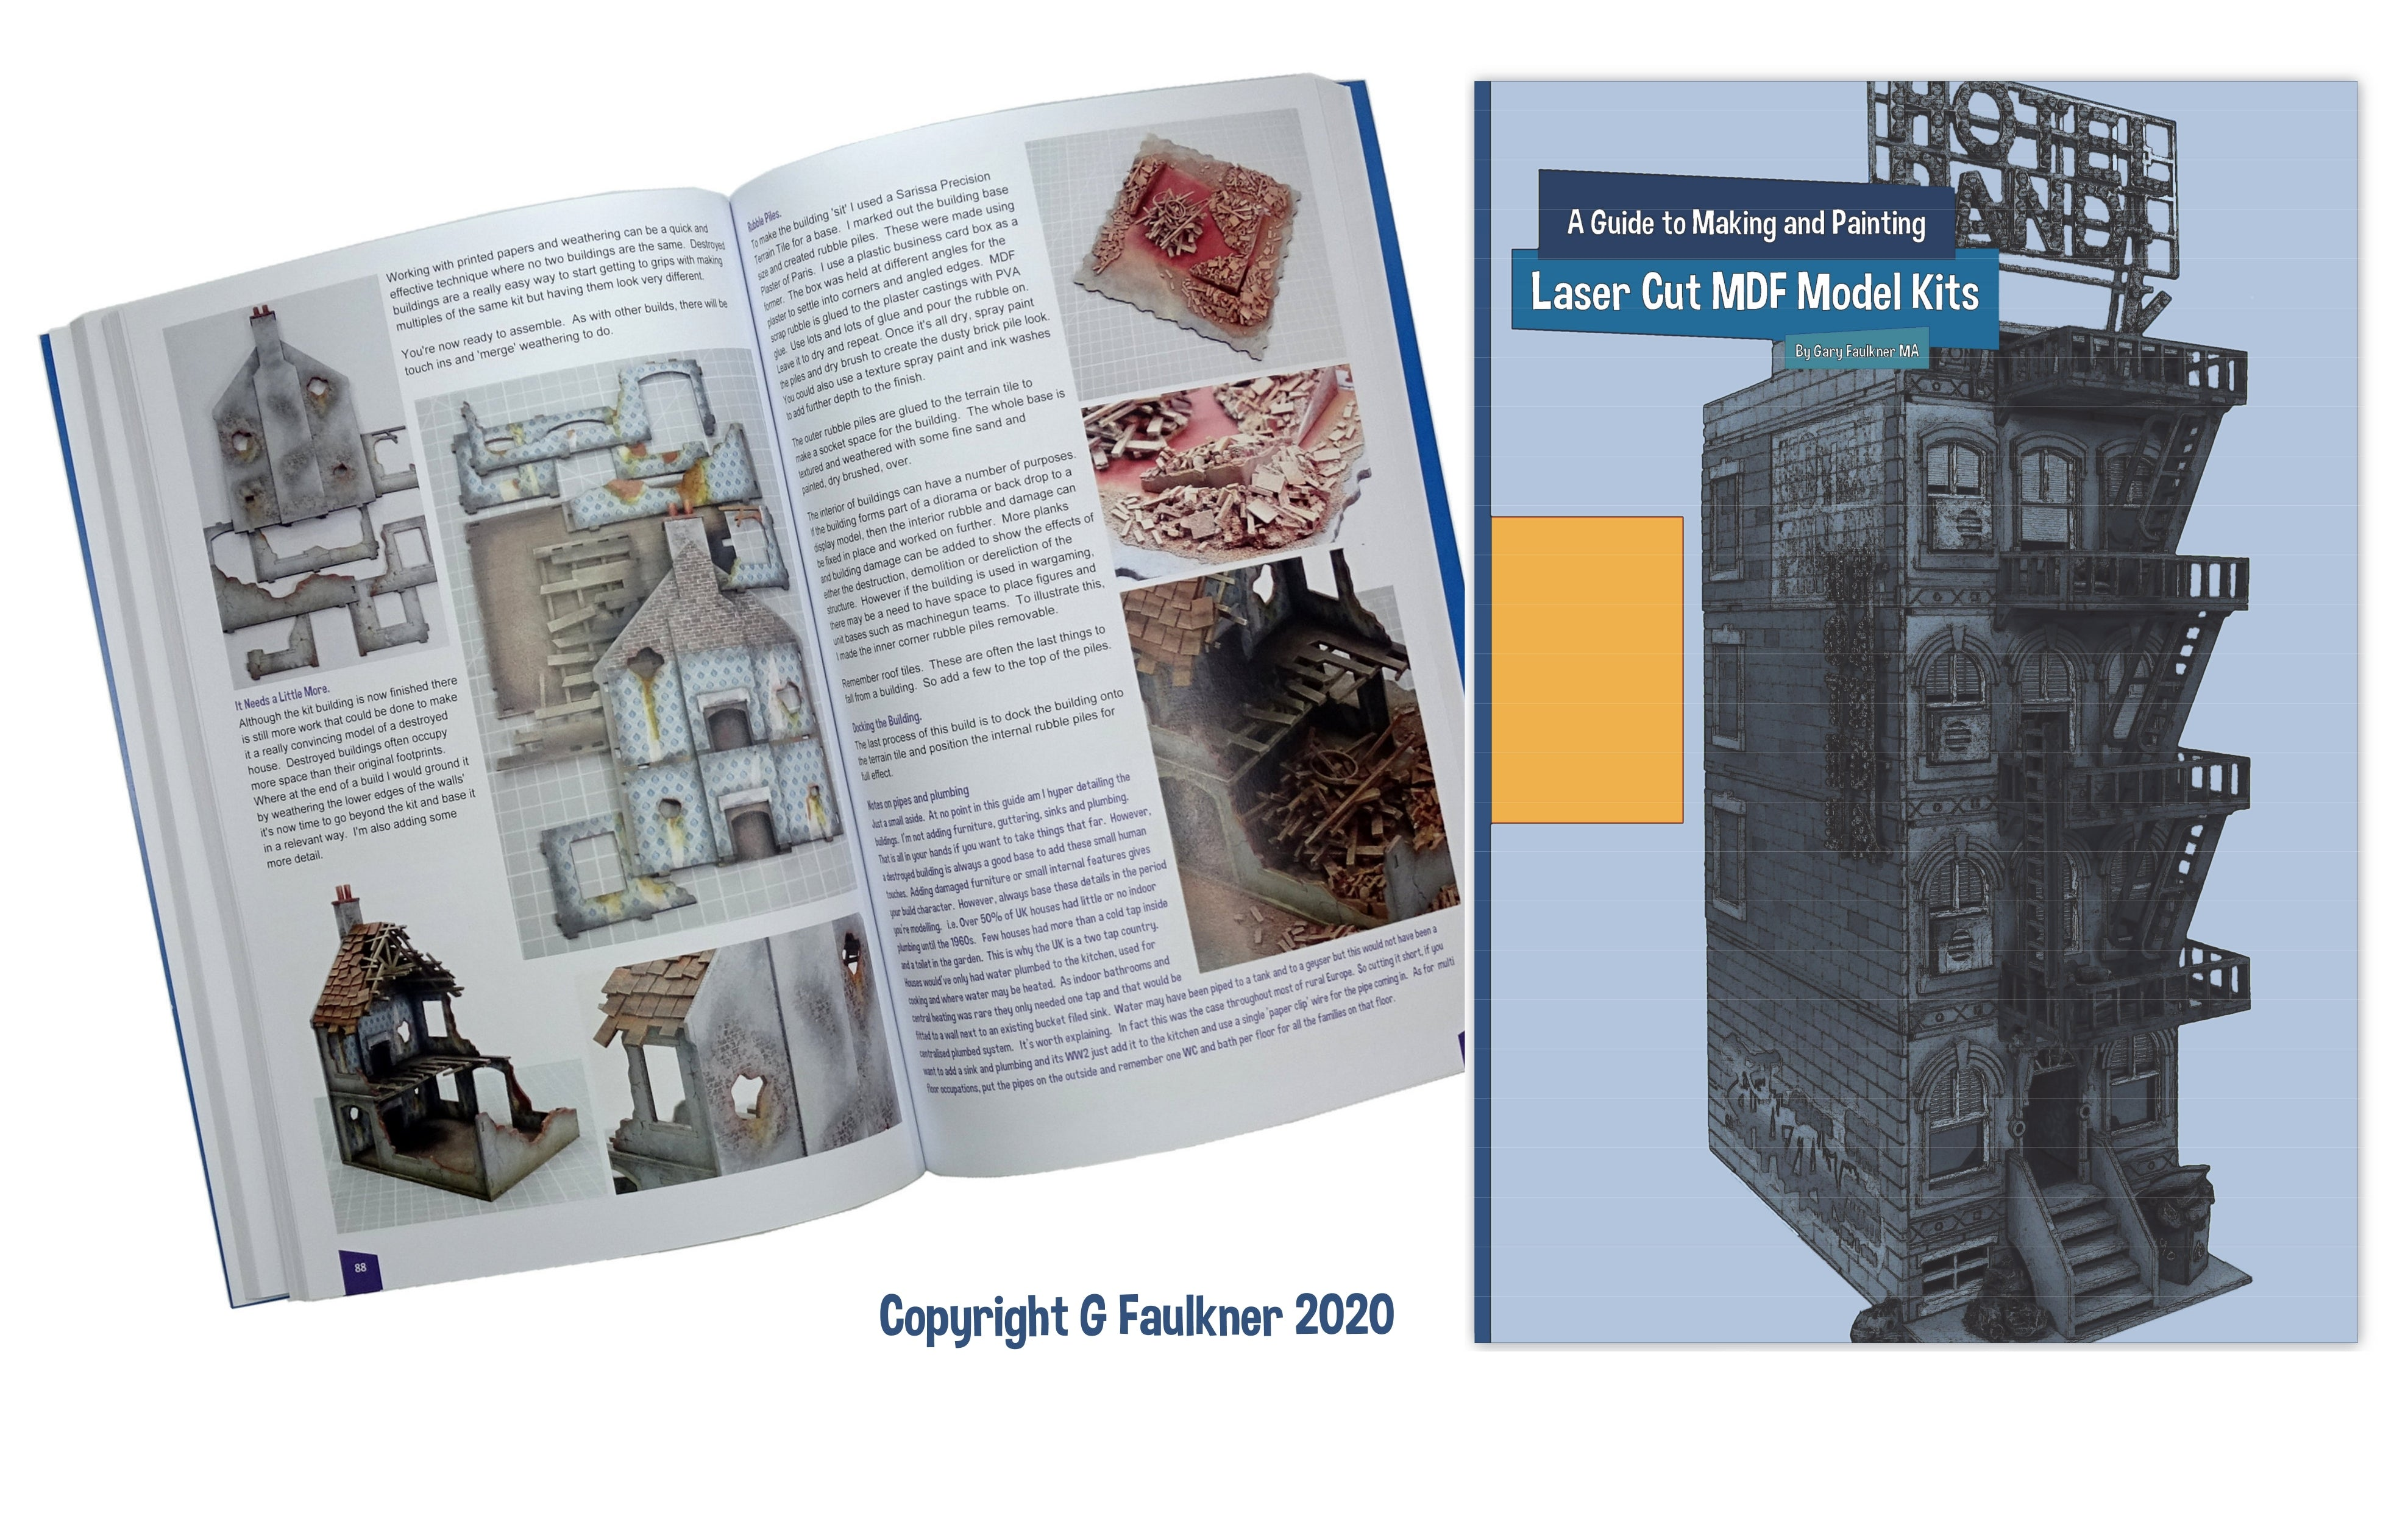 Guide to Making and Painting Laser Cut MDF Model Kits